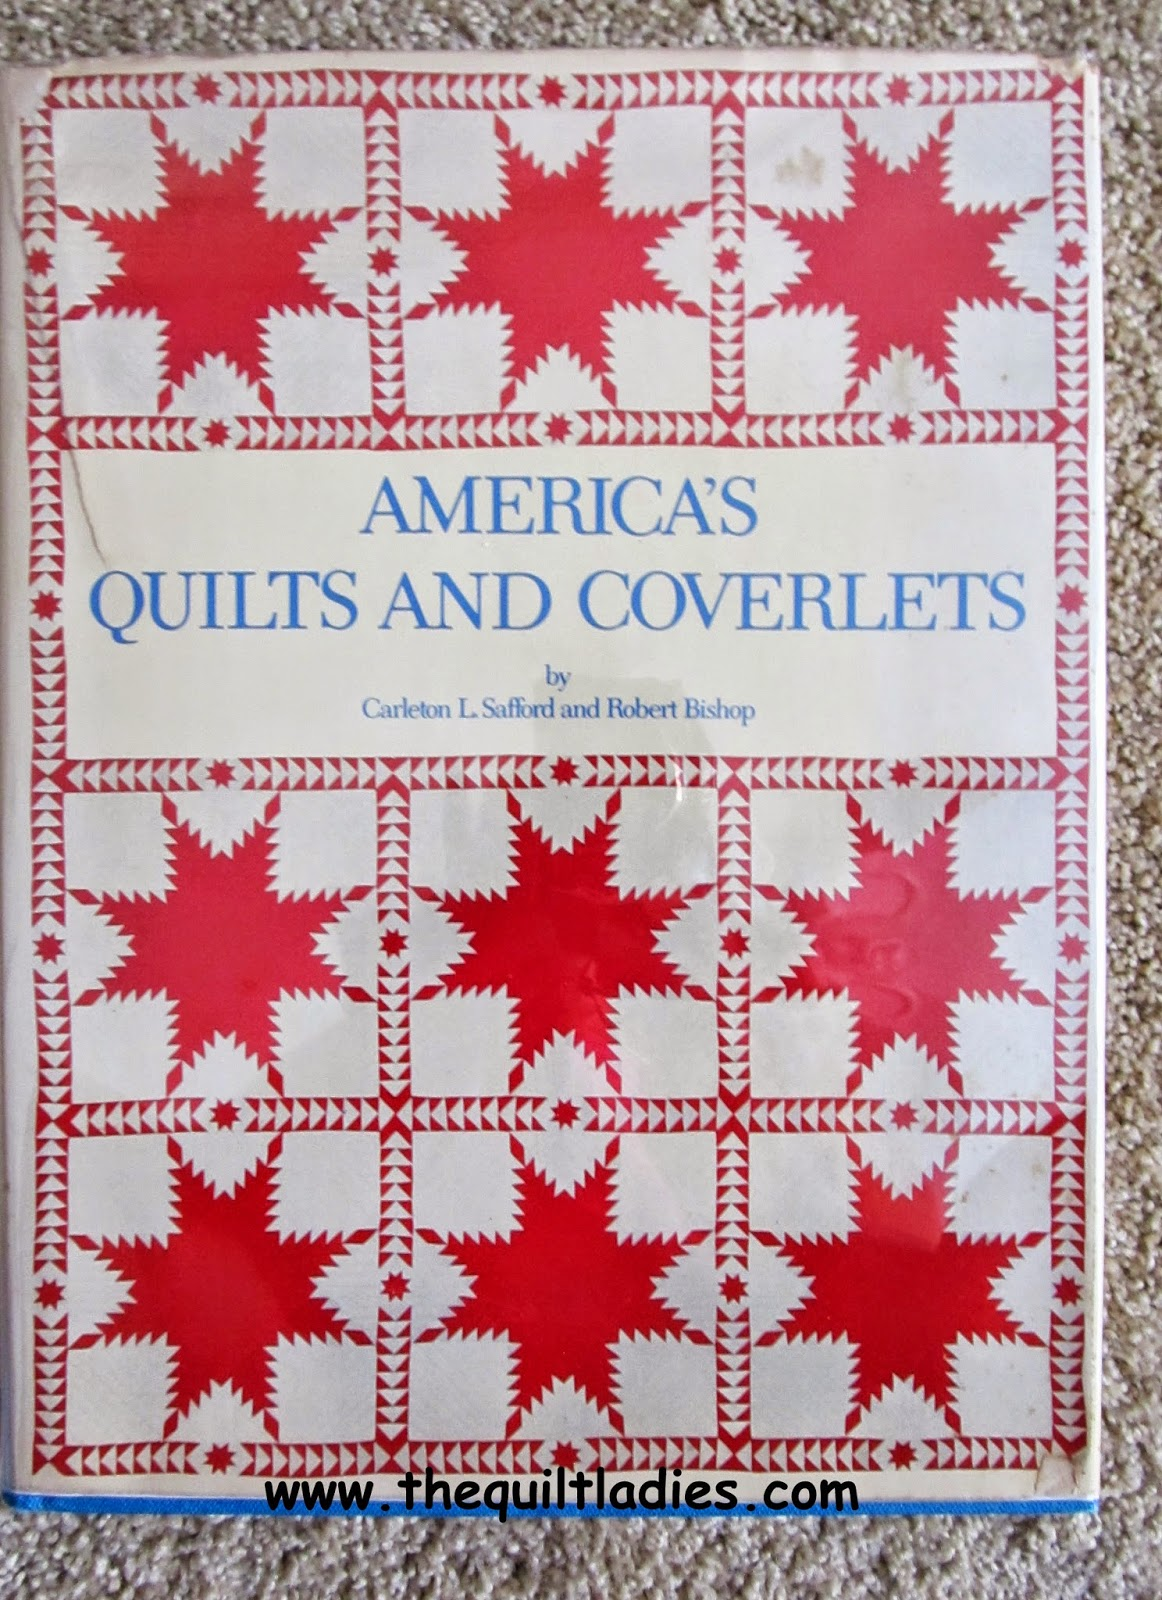 15 Quilt Books every Quilter Needs